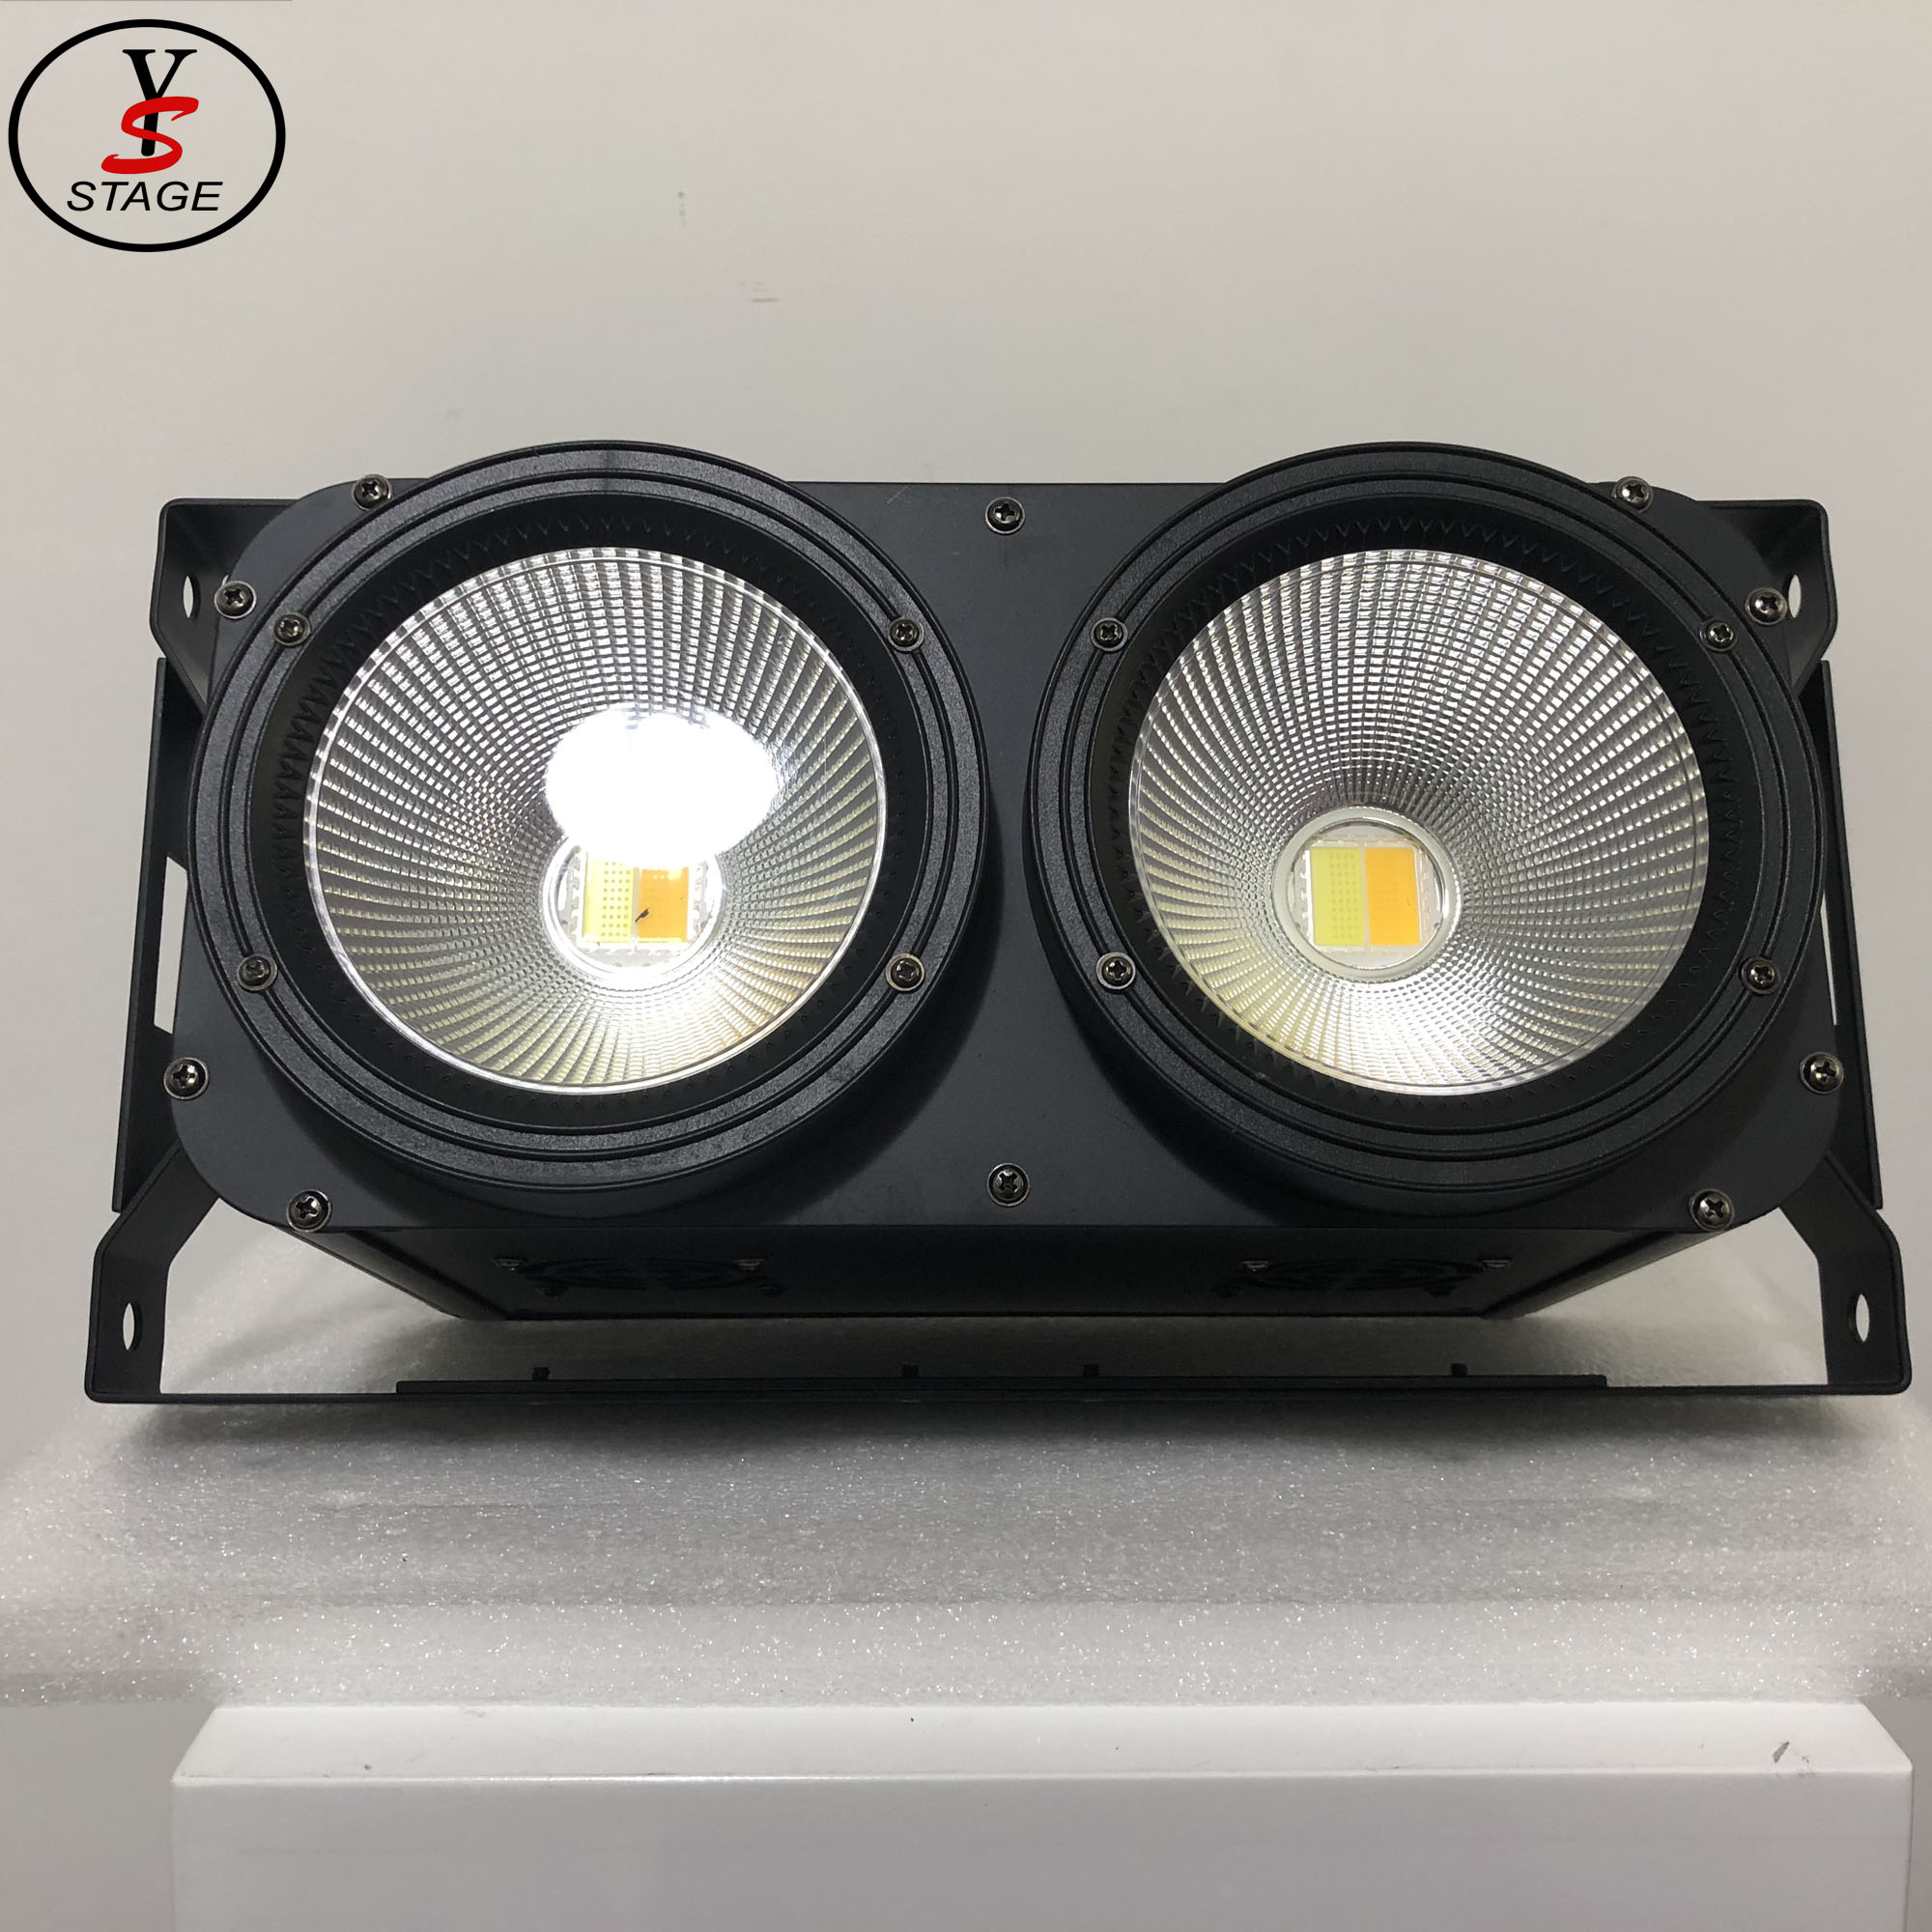 professional Manufacturer Audience Blinder 2*100W lighting for home party show stage Dj club